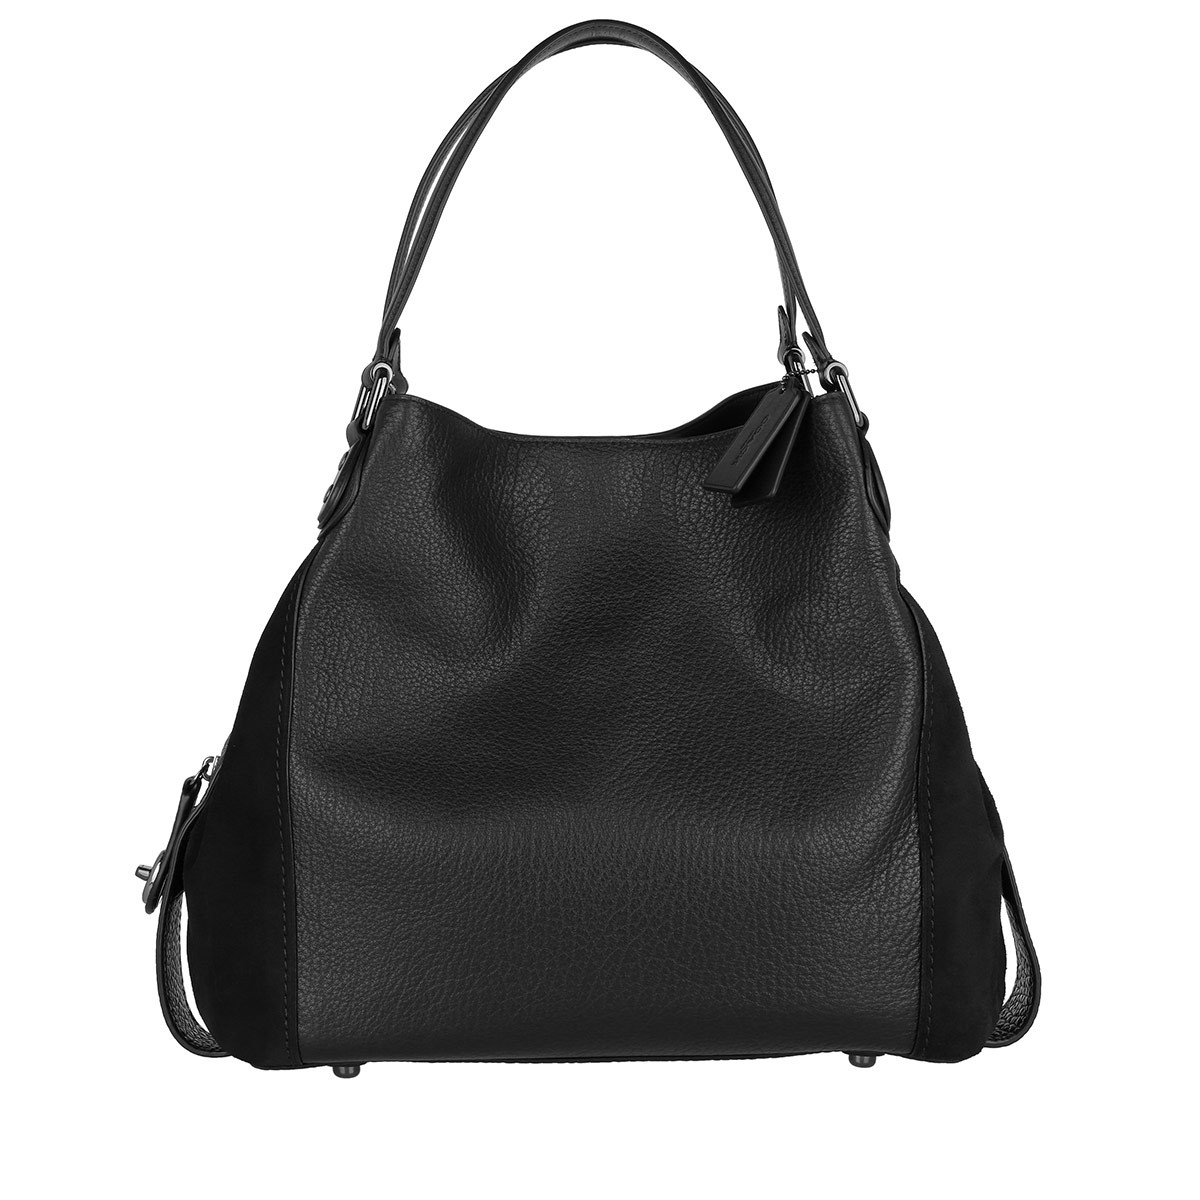 Coach Tote - Edie Shoulder Bag Mixed Leather Black - in schwarz - für Damen